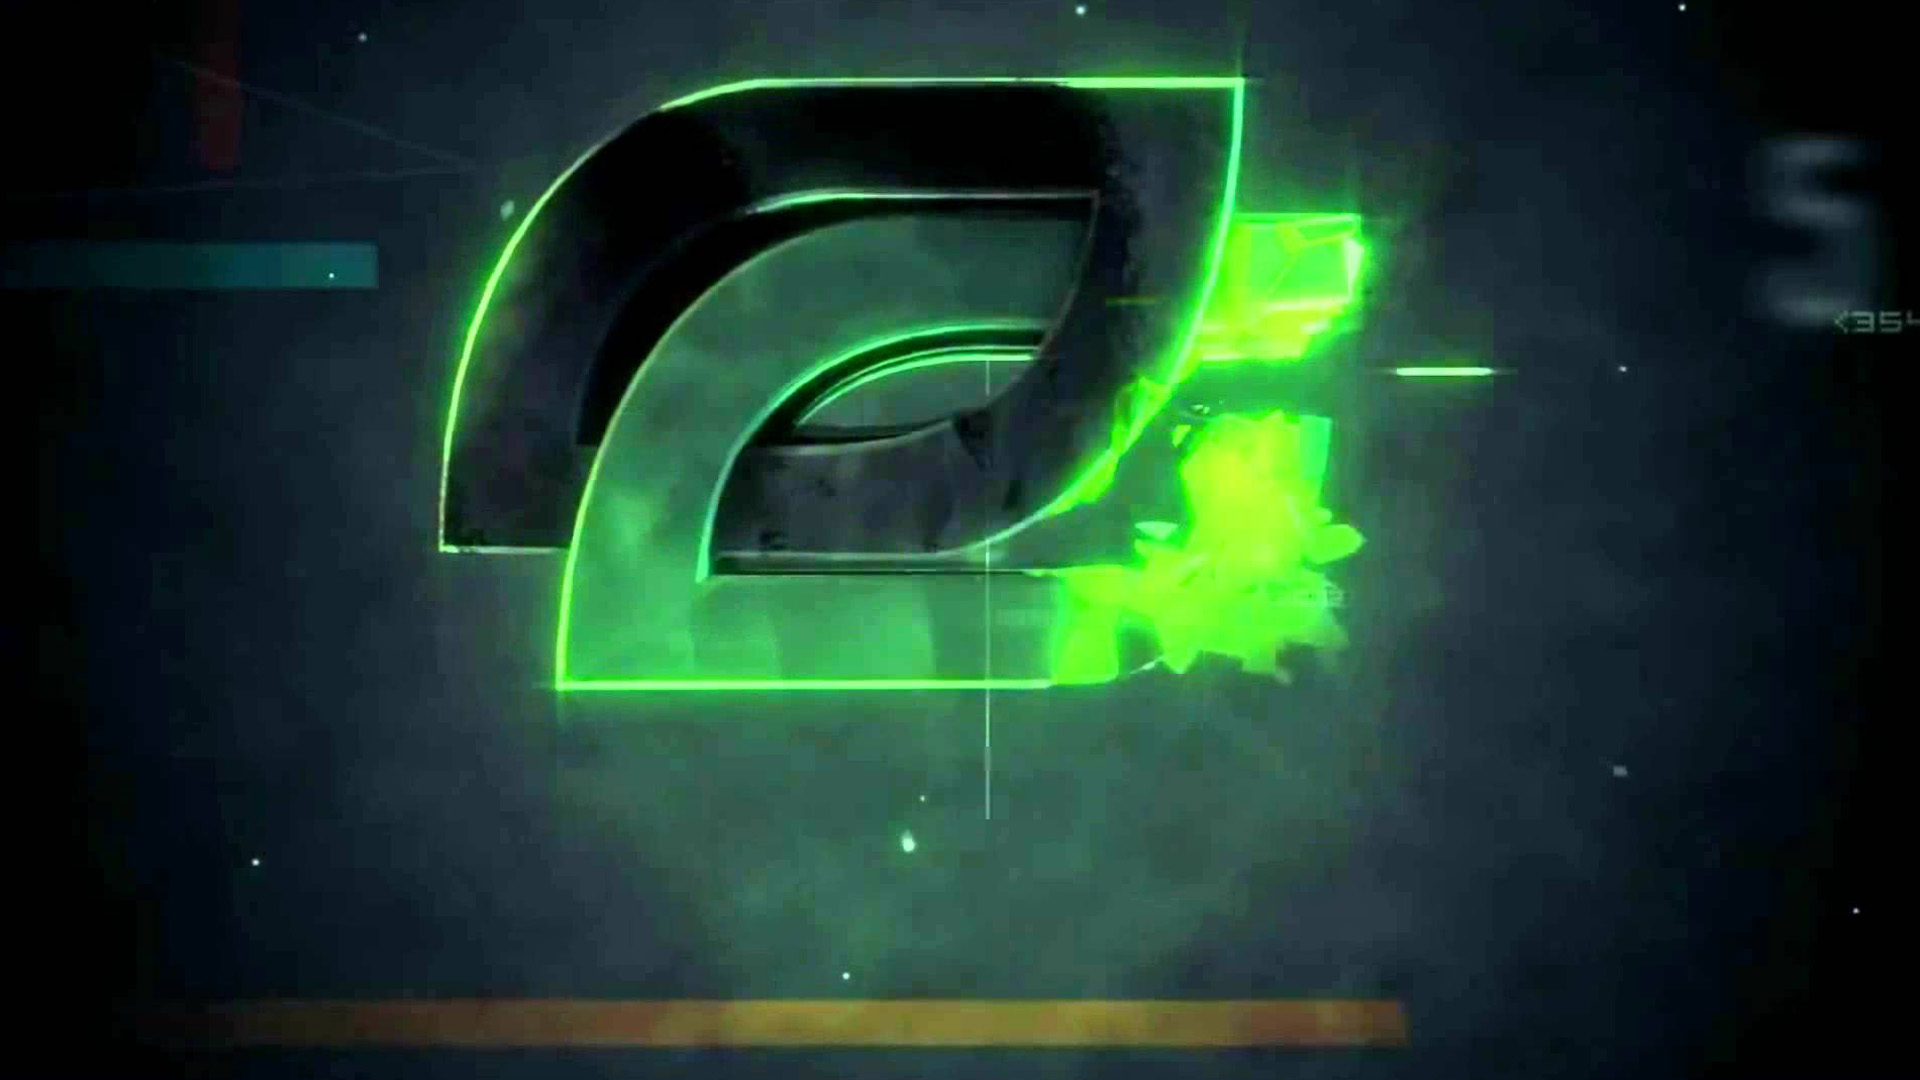 optic gaming desktop background Car Pictures 1920x1080